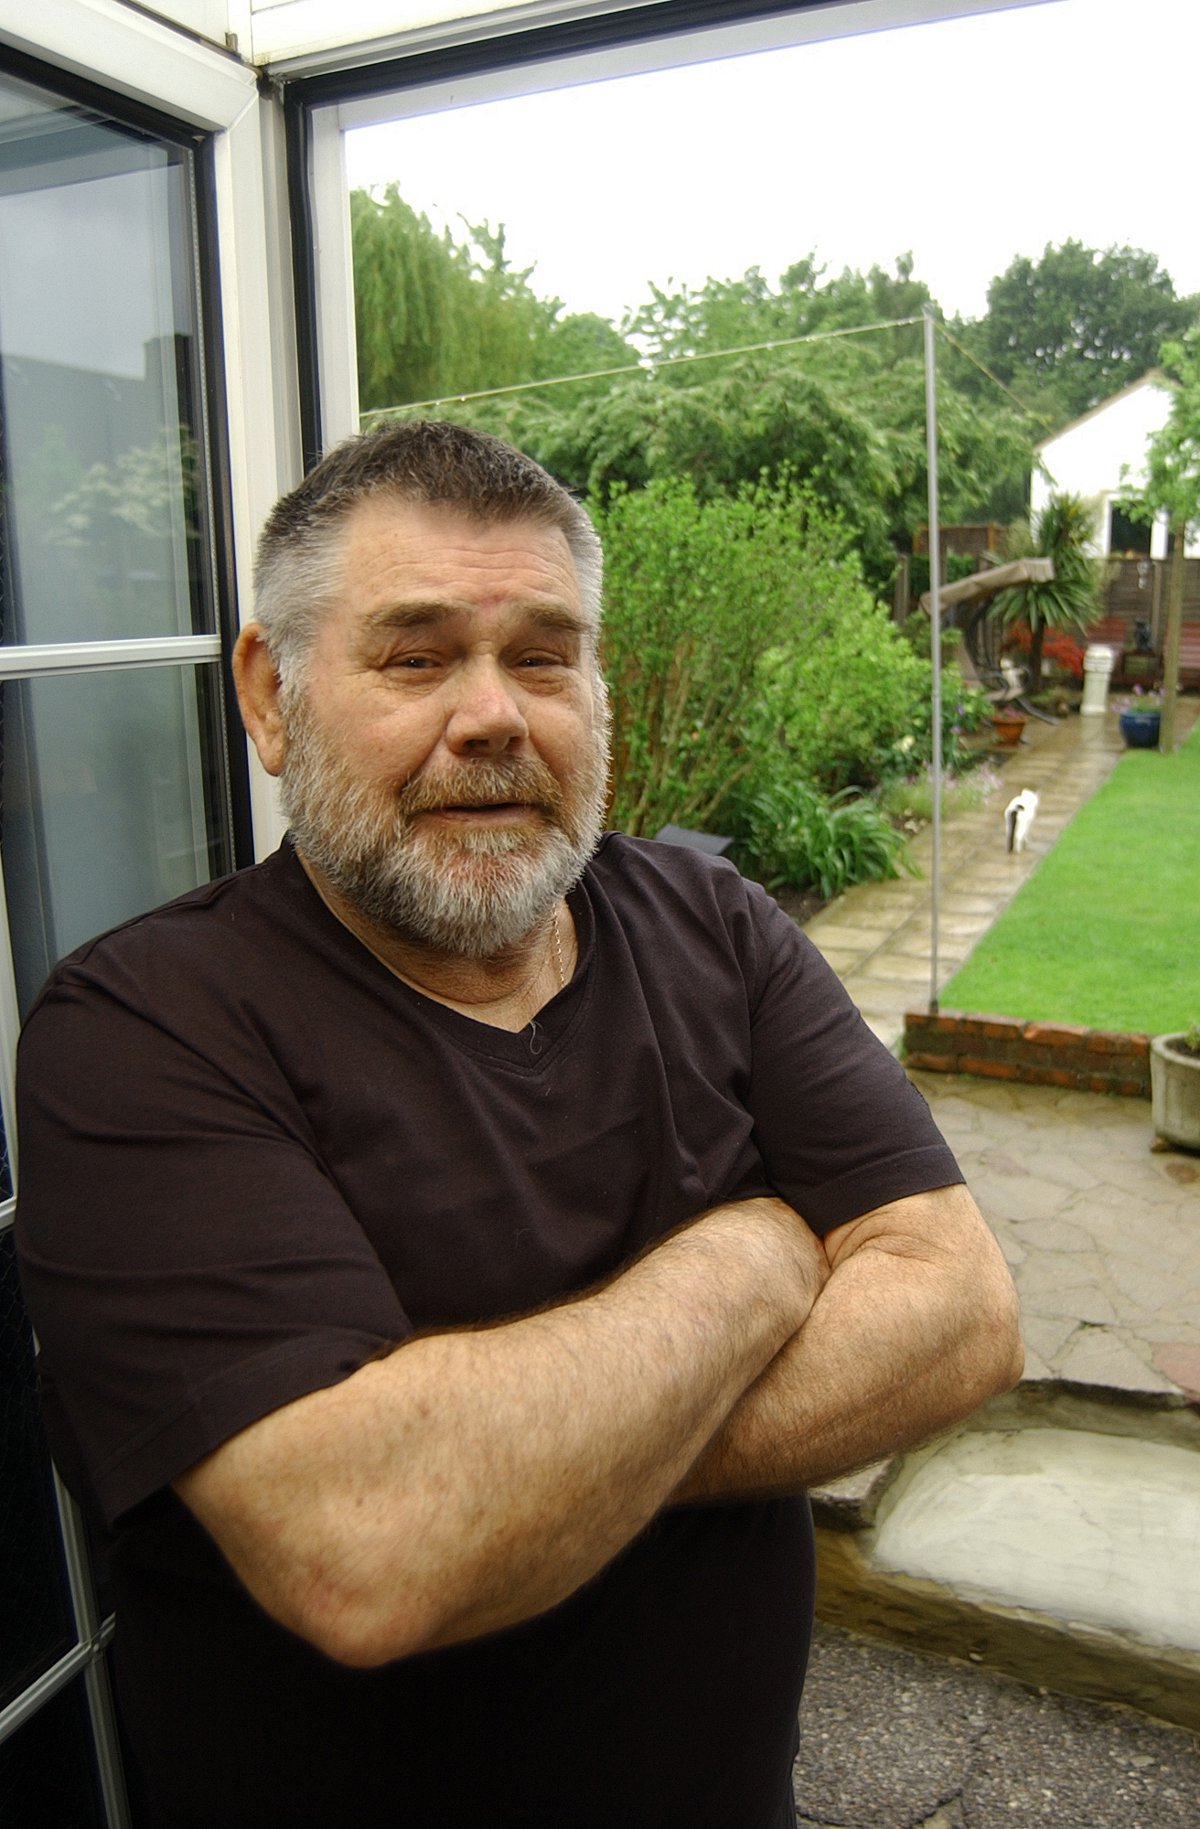 Disabled Bromley man: 'Housing association won't fix my fence until 2016'